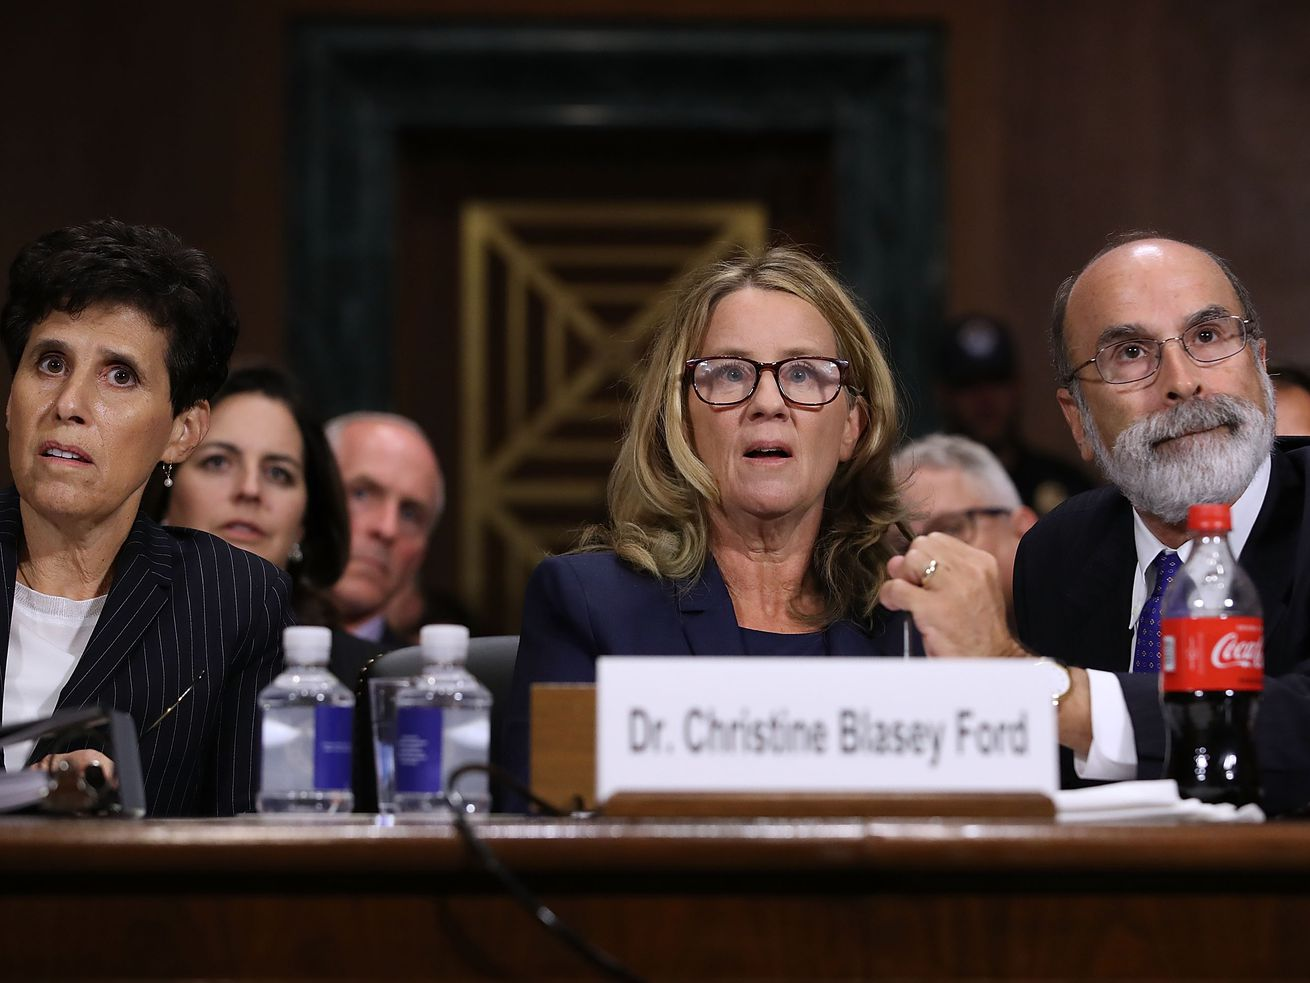 Dr. Christine Blasey Ford testifying before the Senate Judiciary Committee about her allegations against Supreme Court nominee Brett Kavanaugh in September 2018.